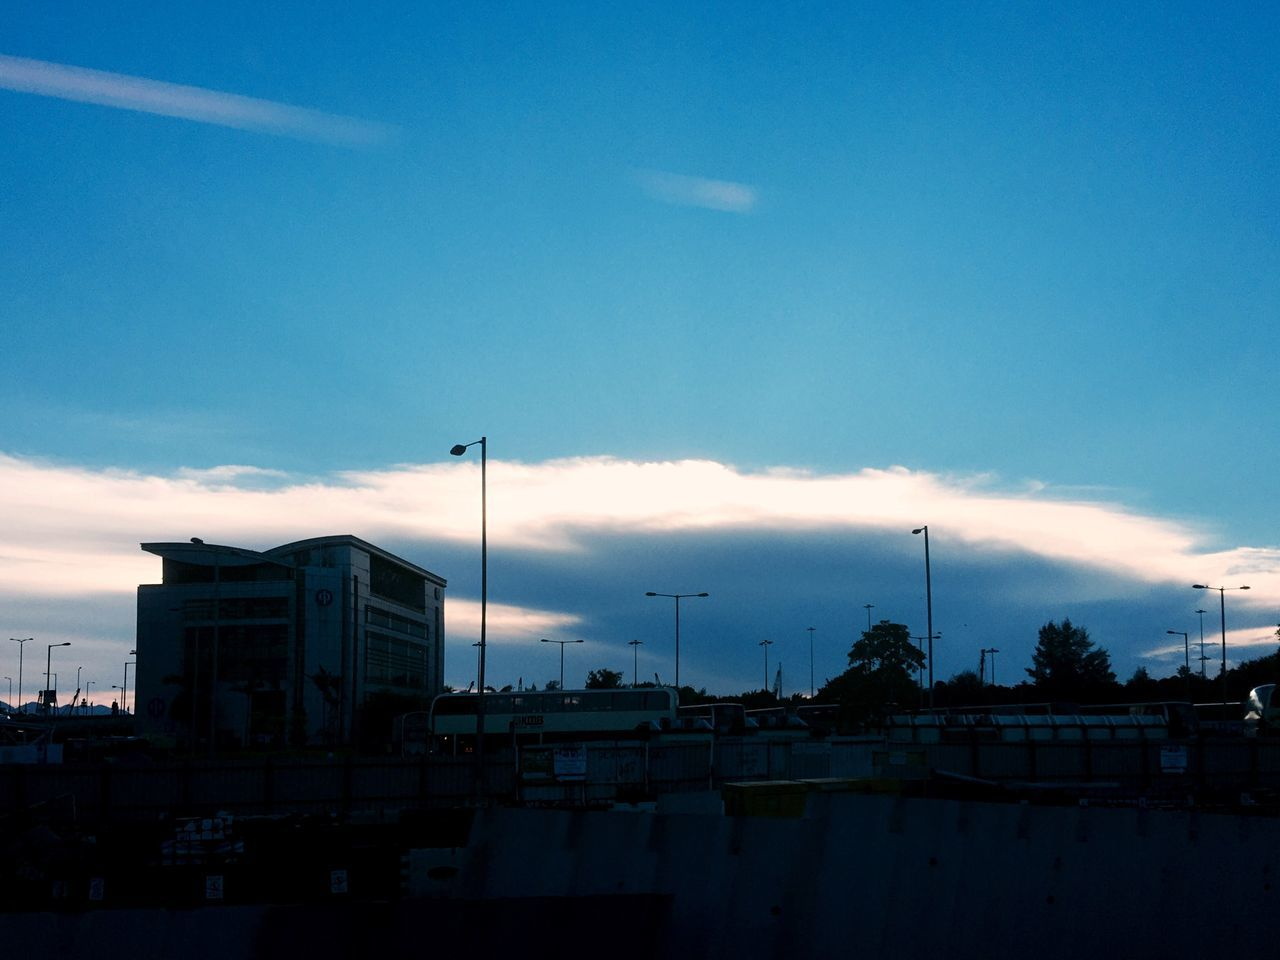 sky, building exterior, built structure, architecture, cloud - sky, no people, outdoors, blue, day, city, sunset, nautical vessel, nature, tree, cityscape